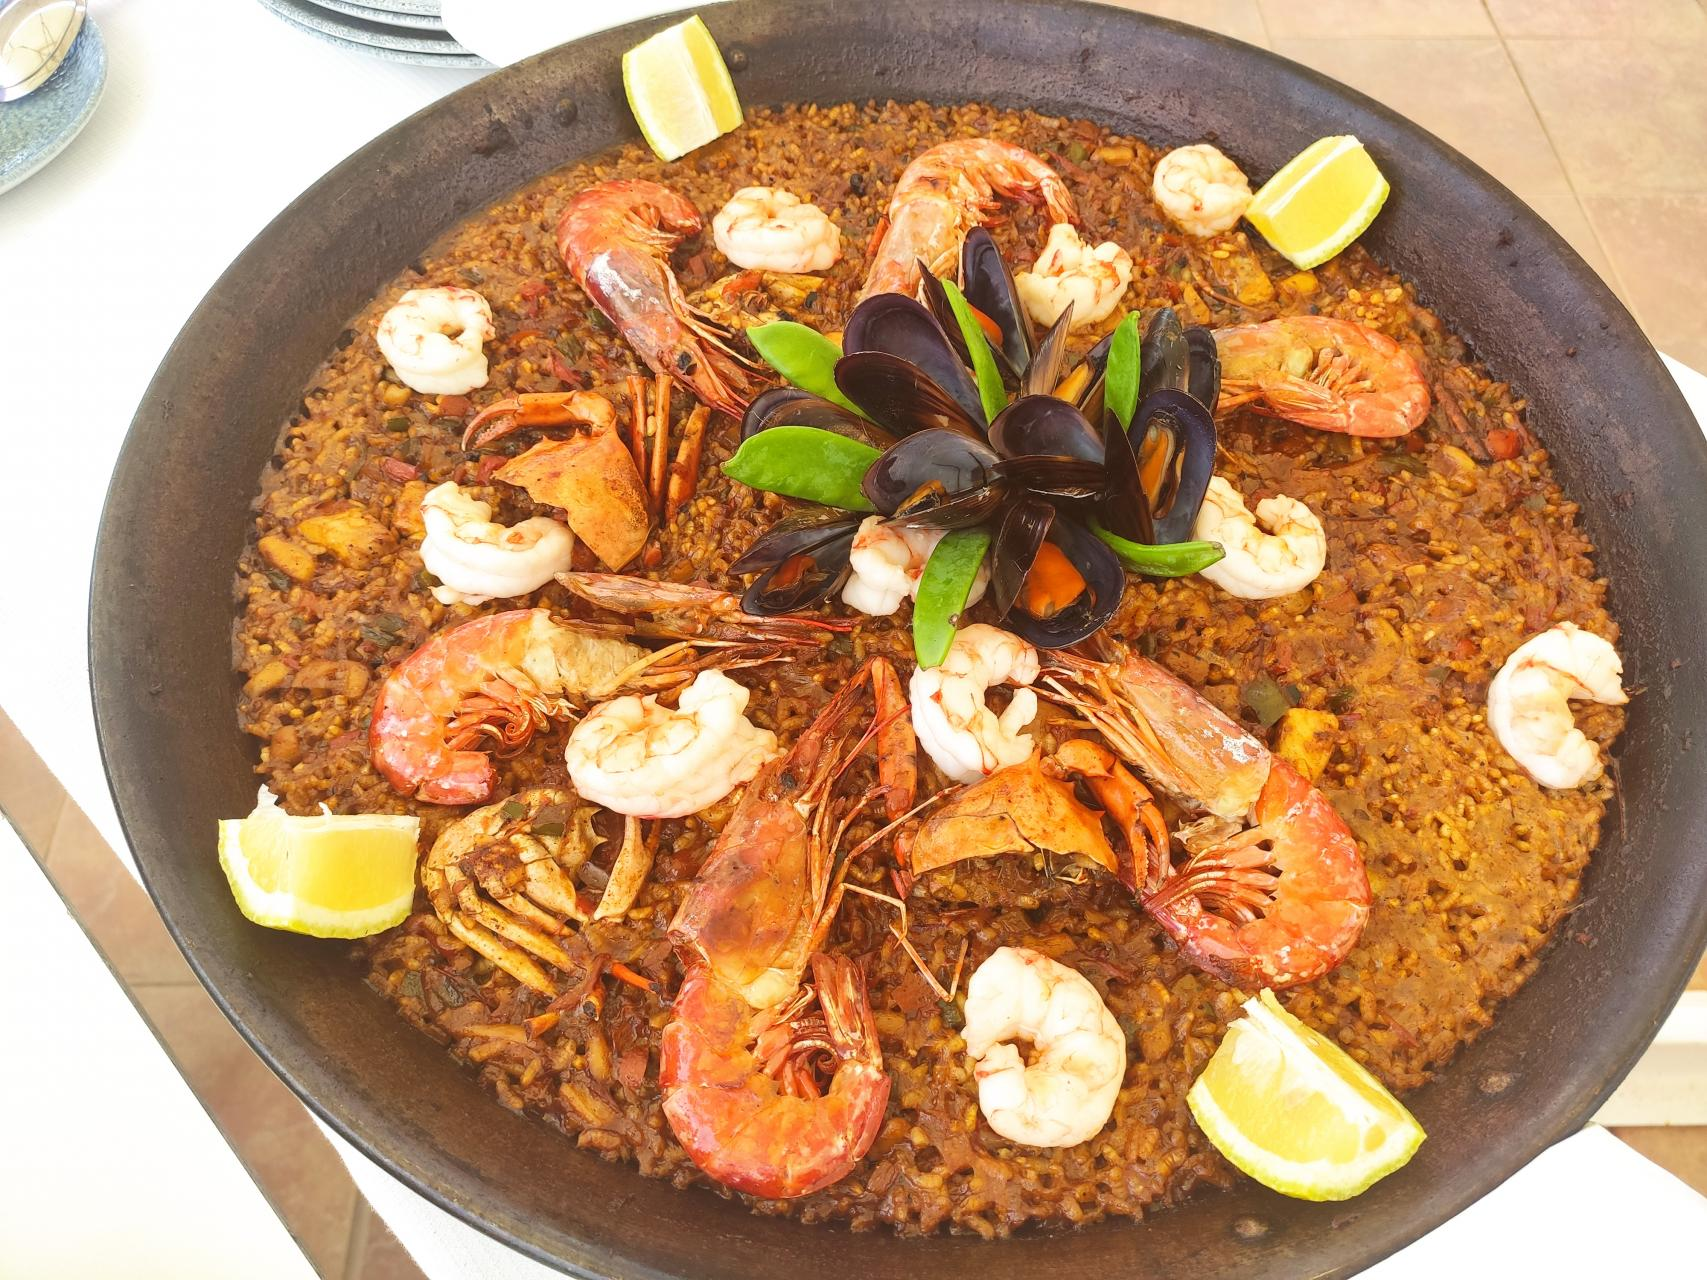 This paella speaks for itself, doesn't it?